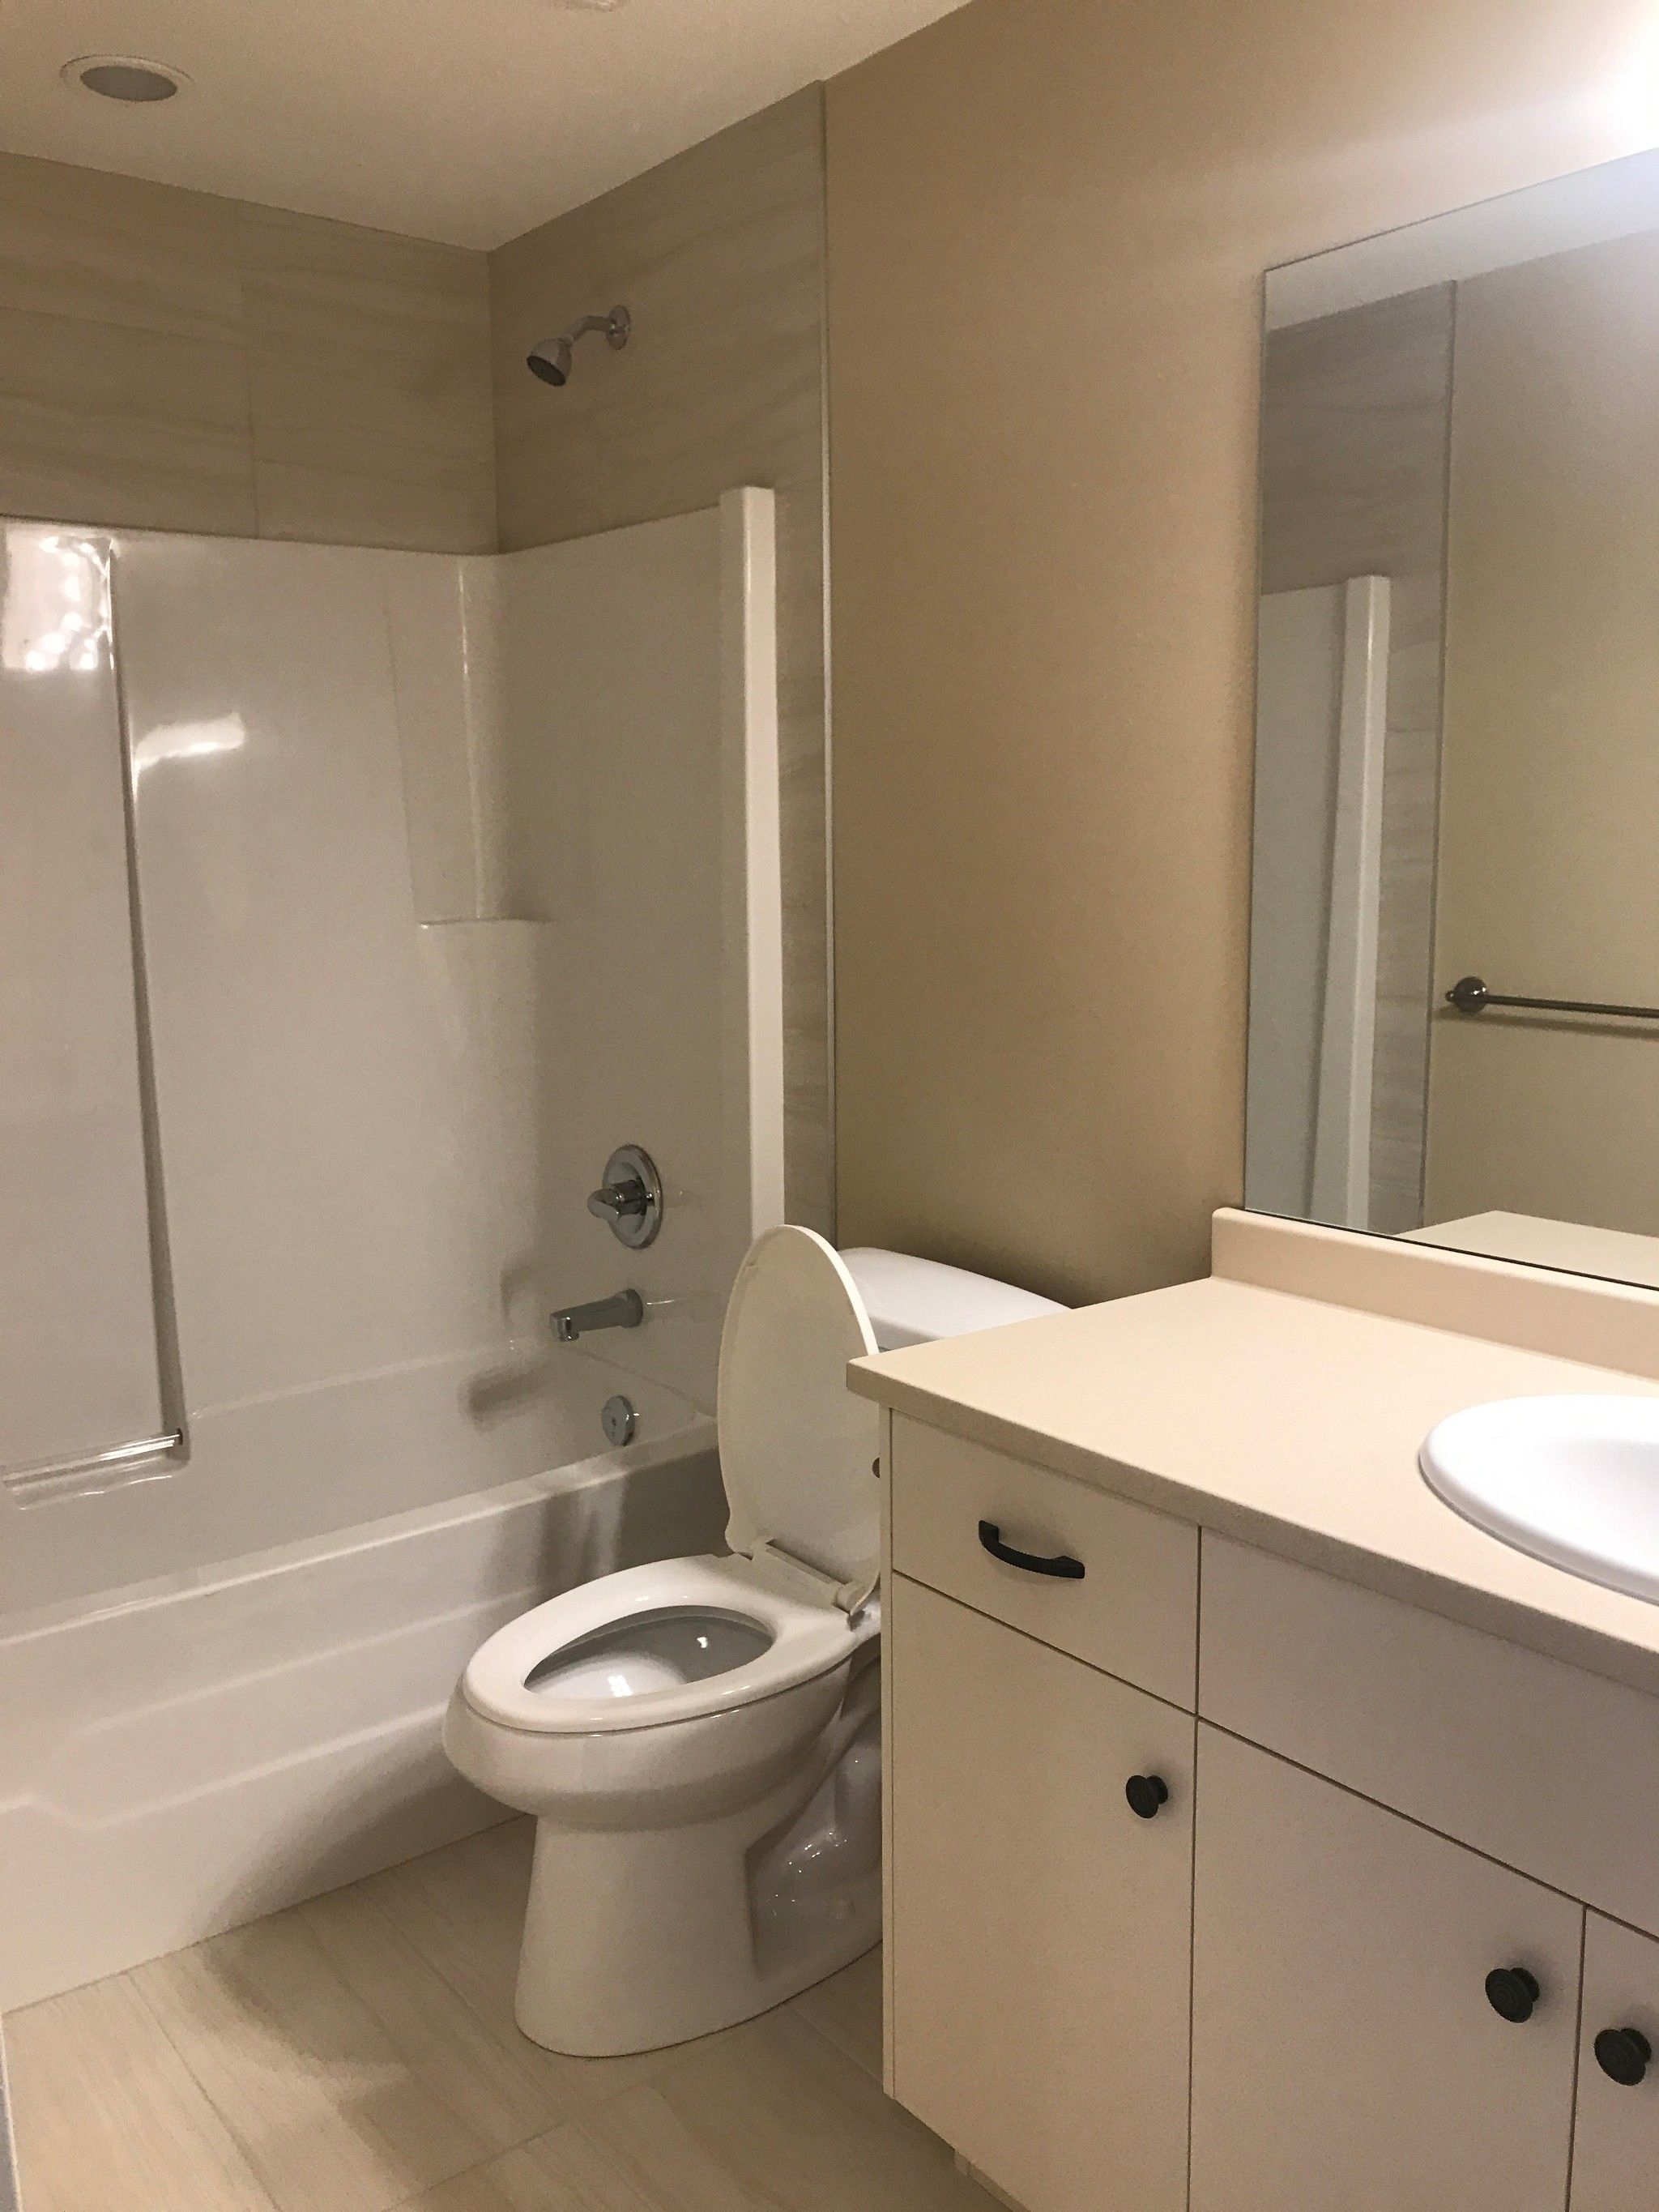 Photo 5: Photos: BSMT 51045 Zander Place in Chilliwack: Condo for rent